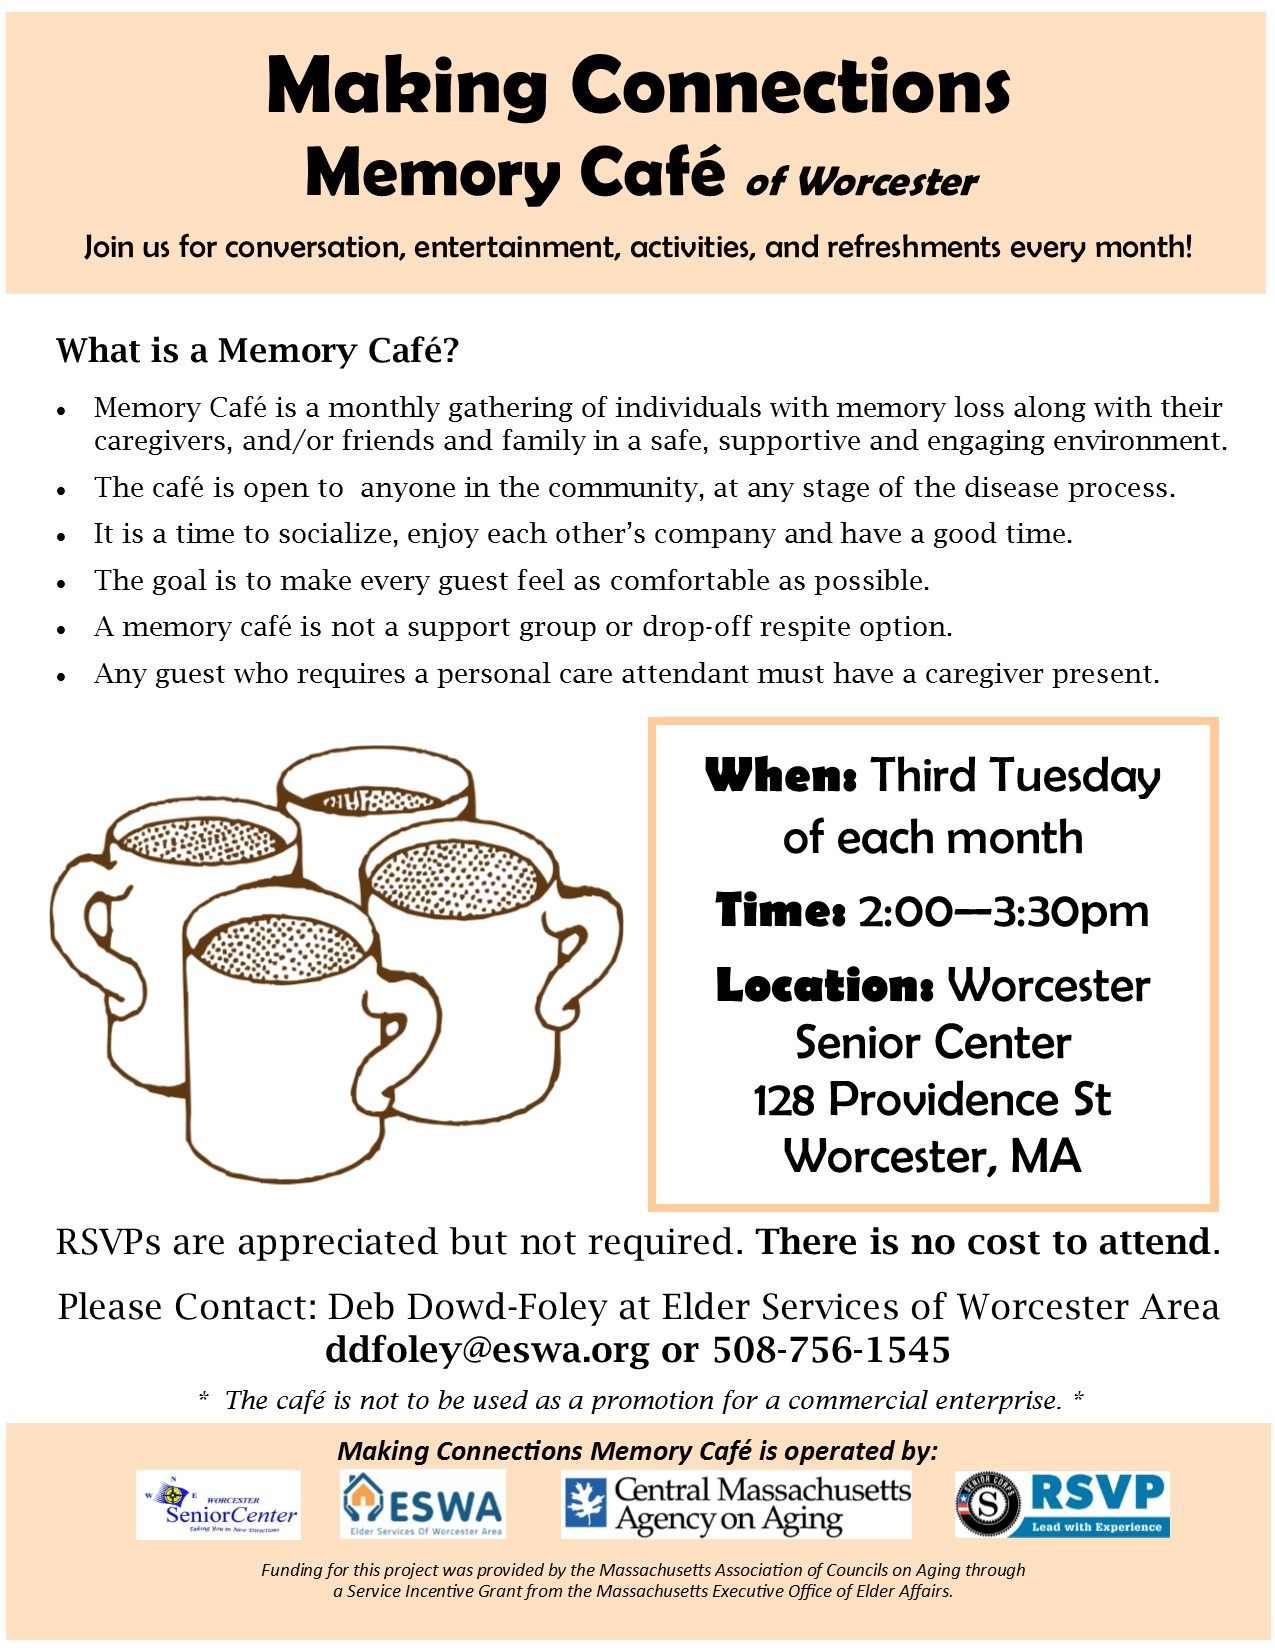 Making Connections Memory Cafe